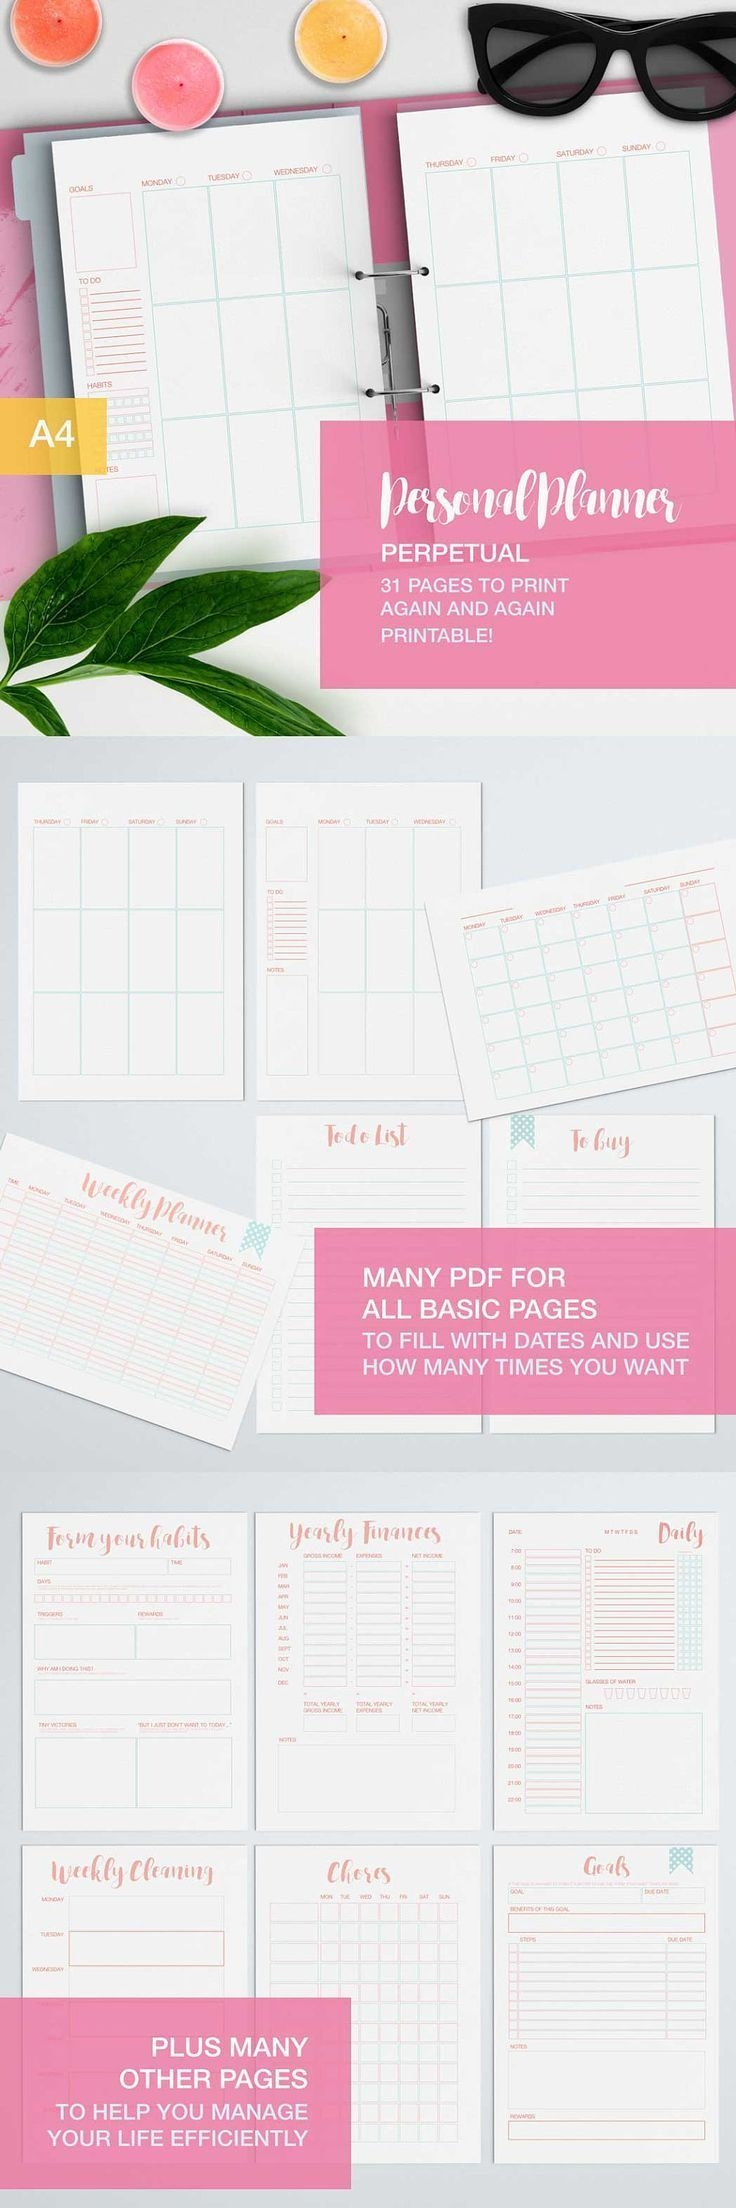 a new, completely reworked personal planner that now focuses